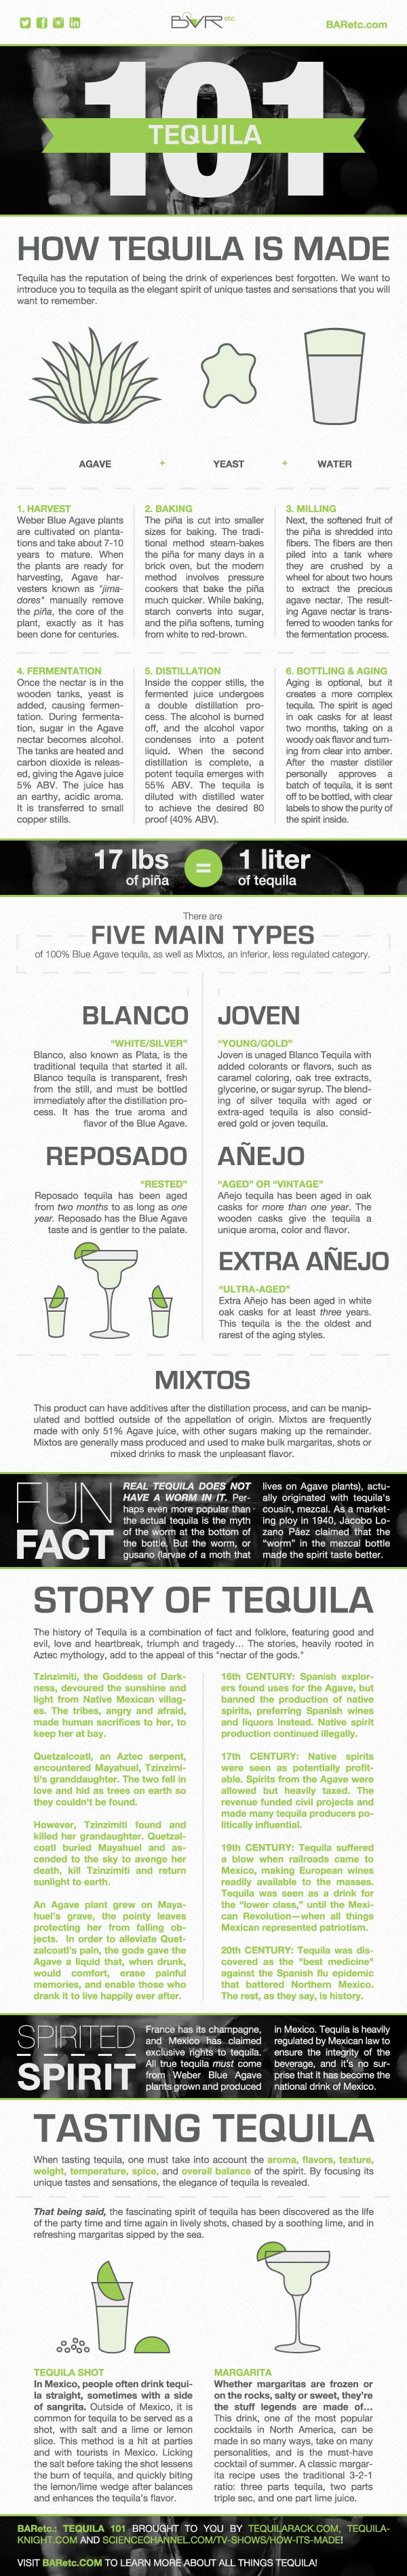 Tequila 101 Infographic, designed by Emily Harris, Graphic Design Coordinator at BARetc.